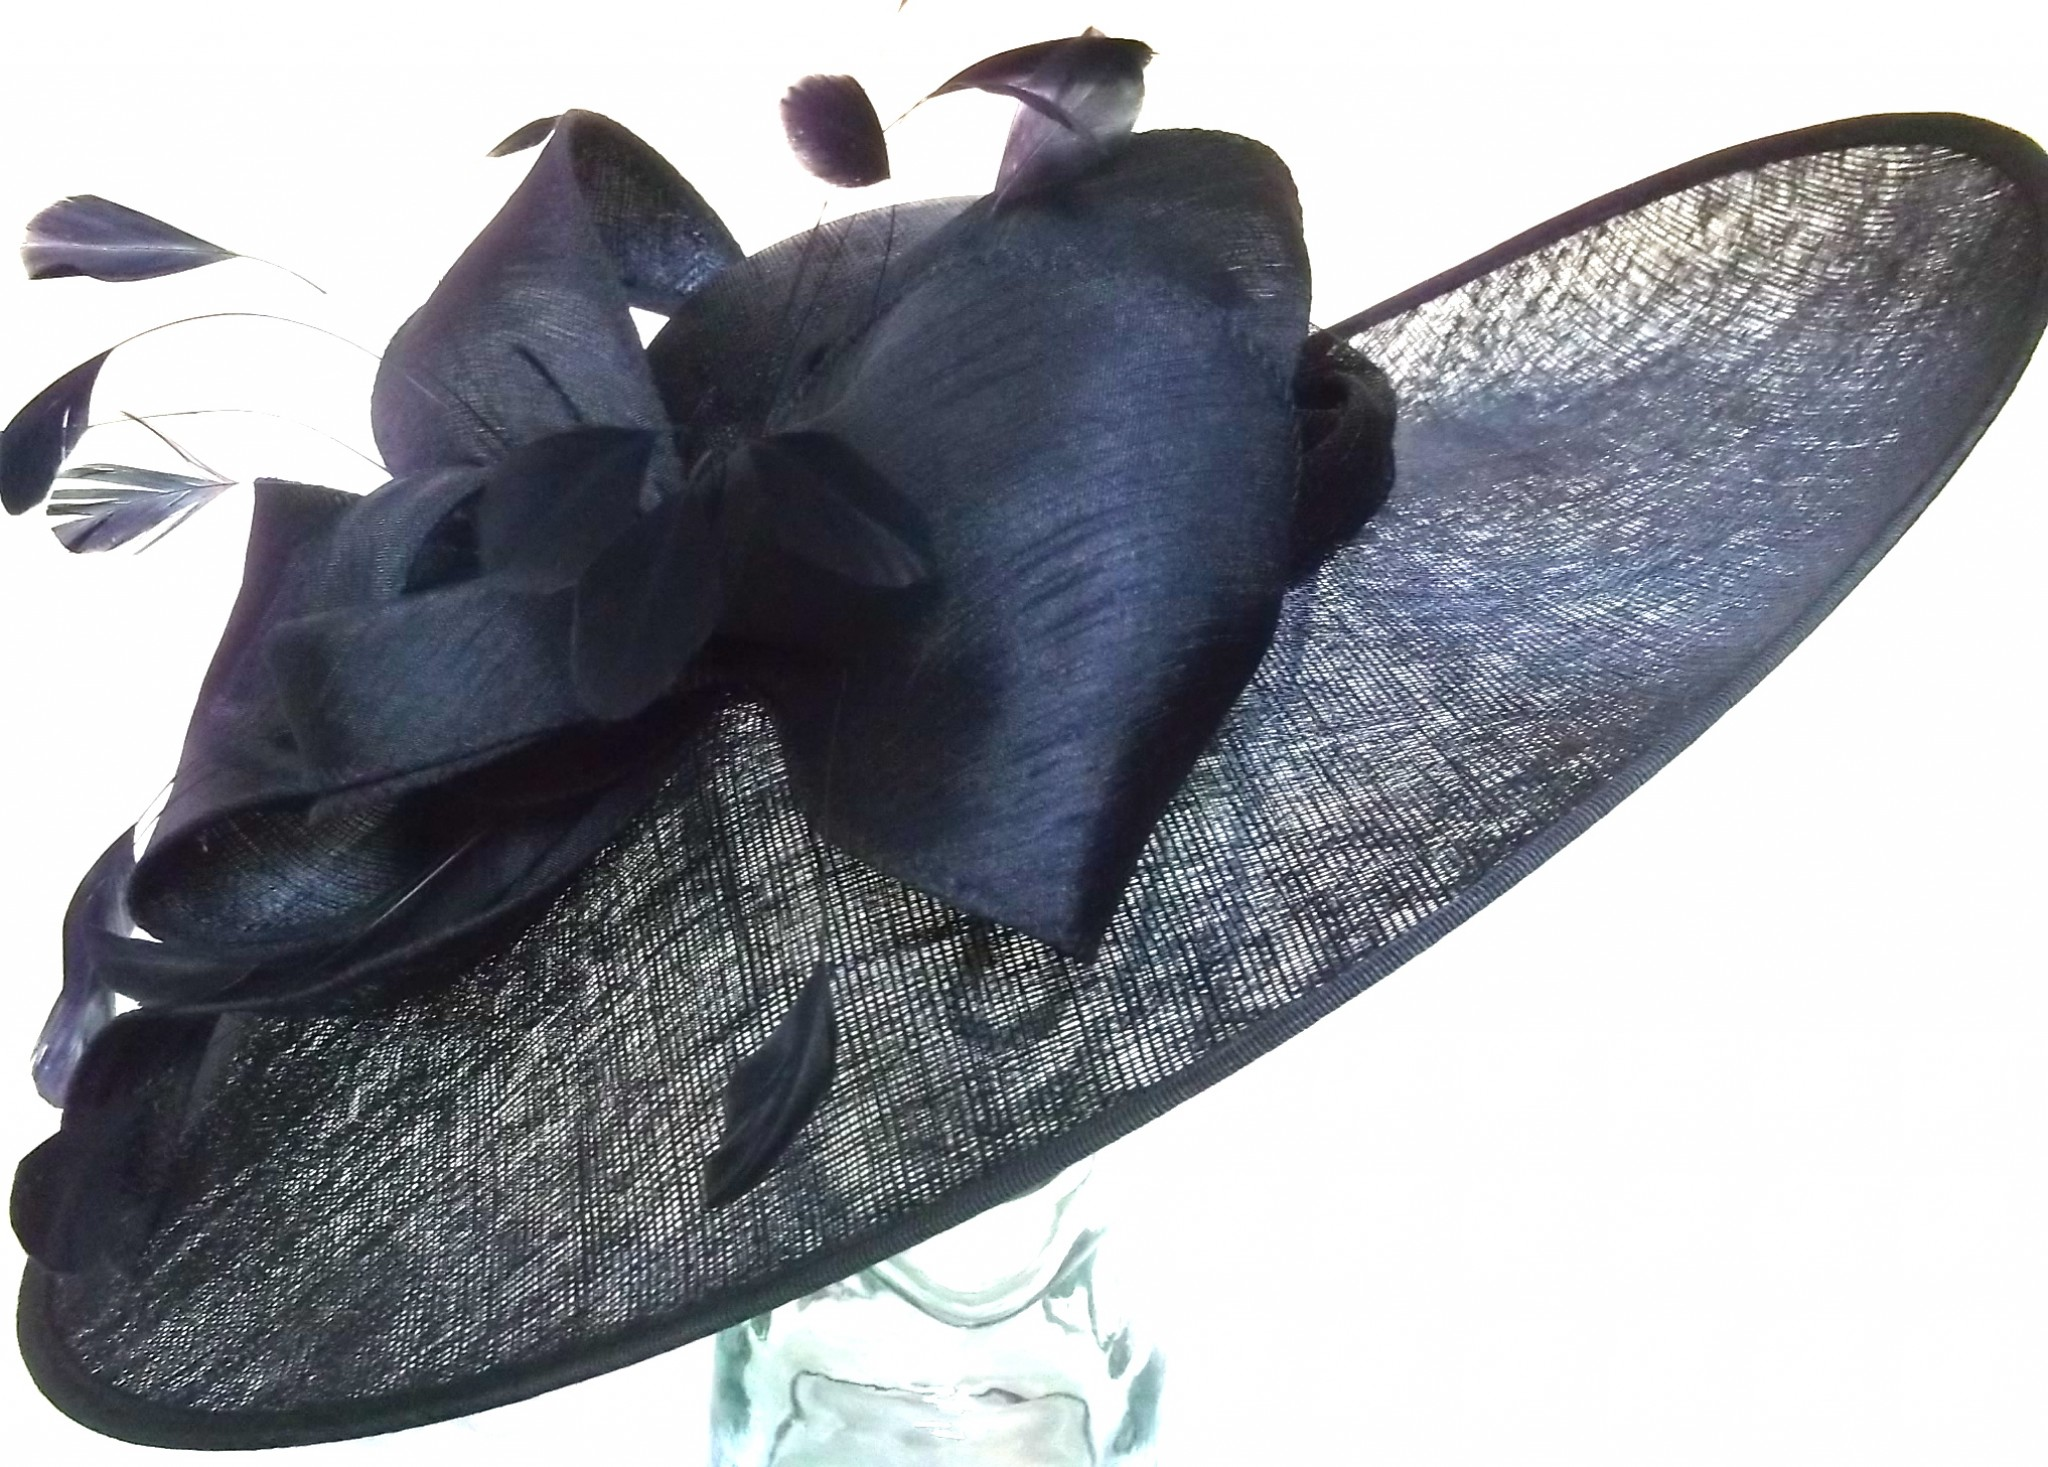 Snoxell Gwyther - Occasion Hat (Navy) - Occasion Hats  5d78a189440